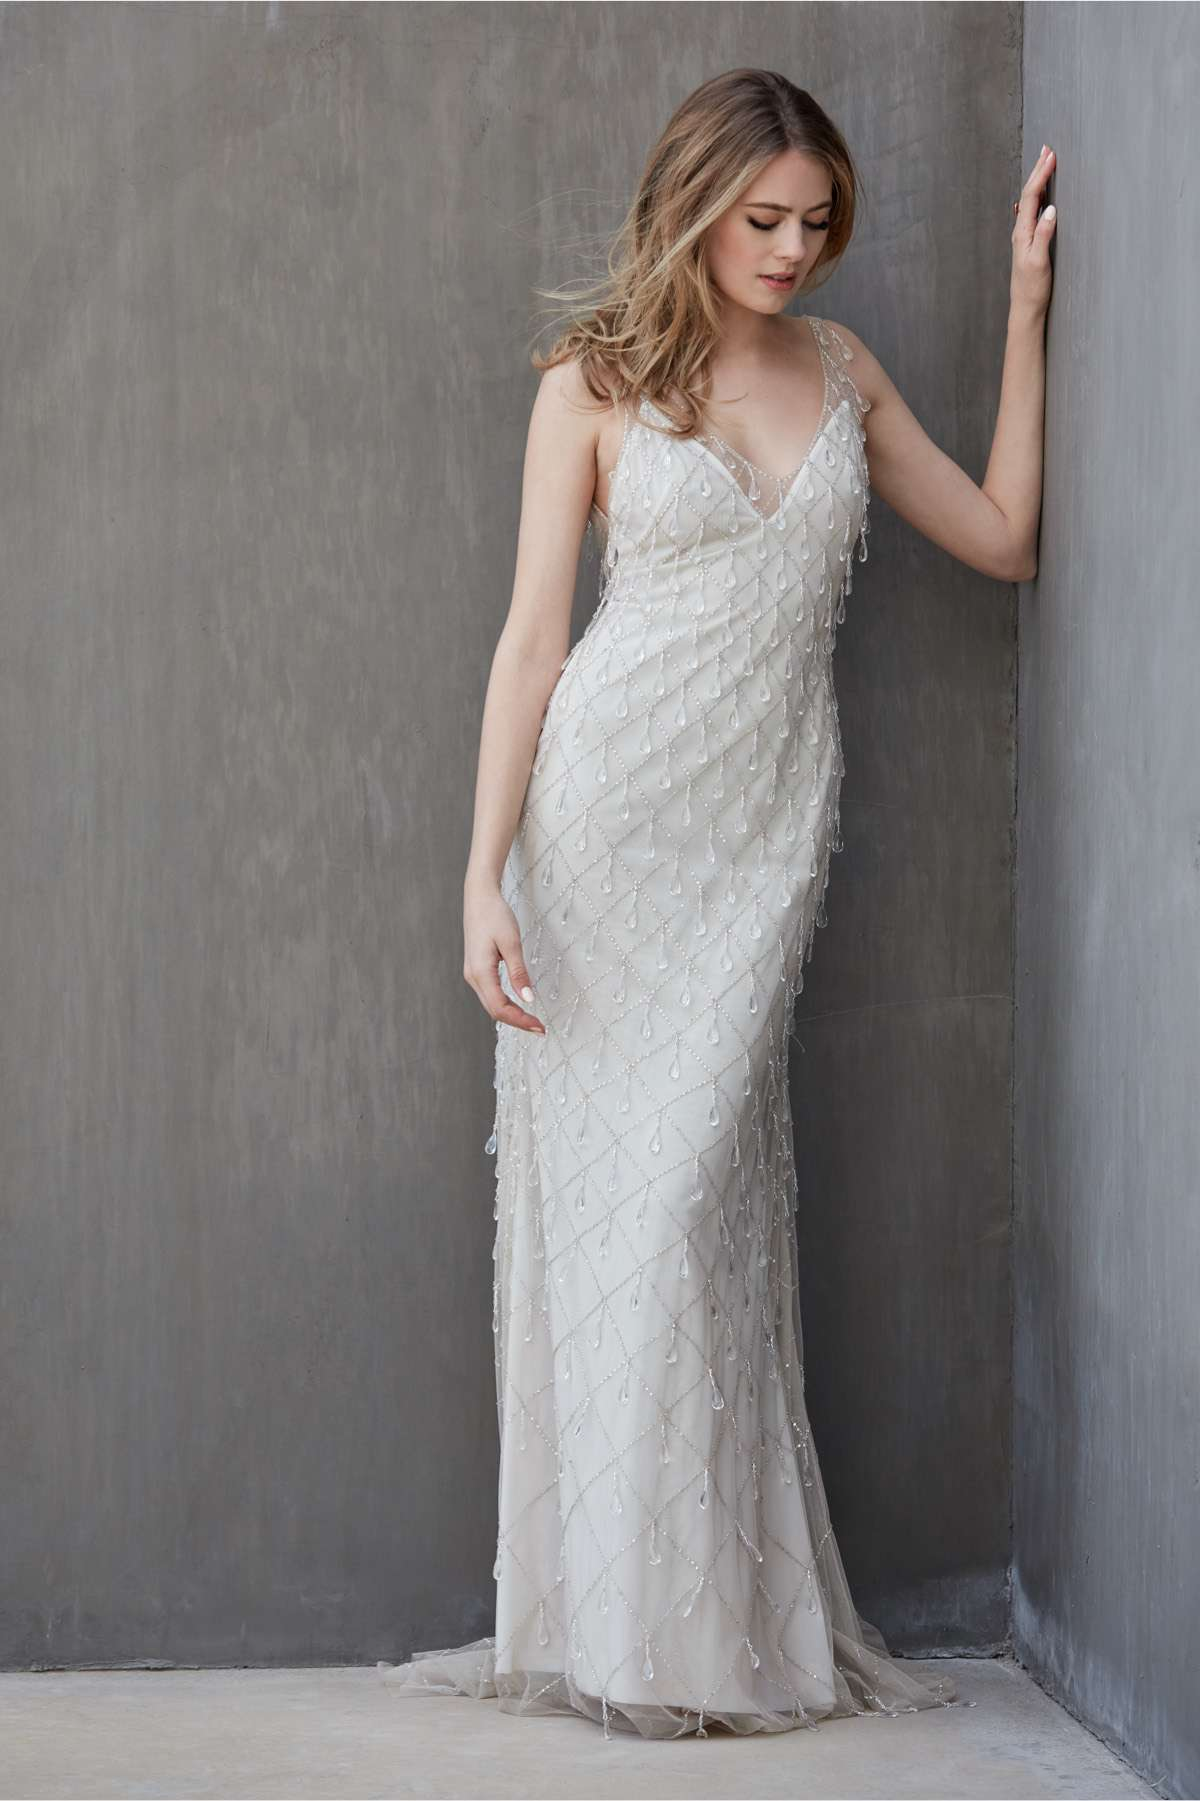 Model in sleeveless V-neck sheath gown with diamante drop crystals in a lattice pattern